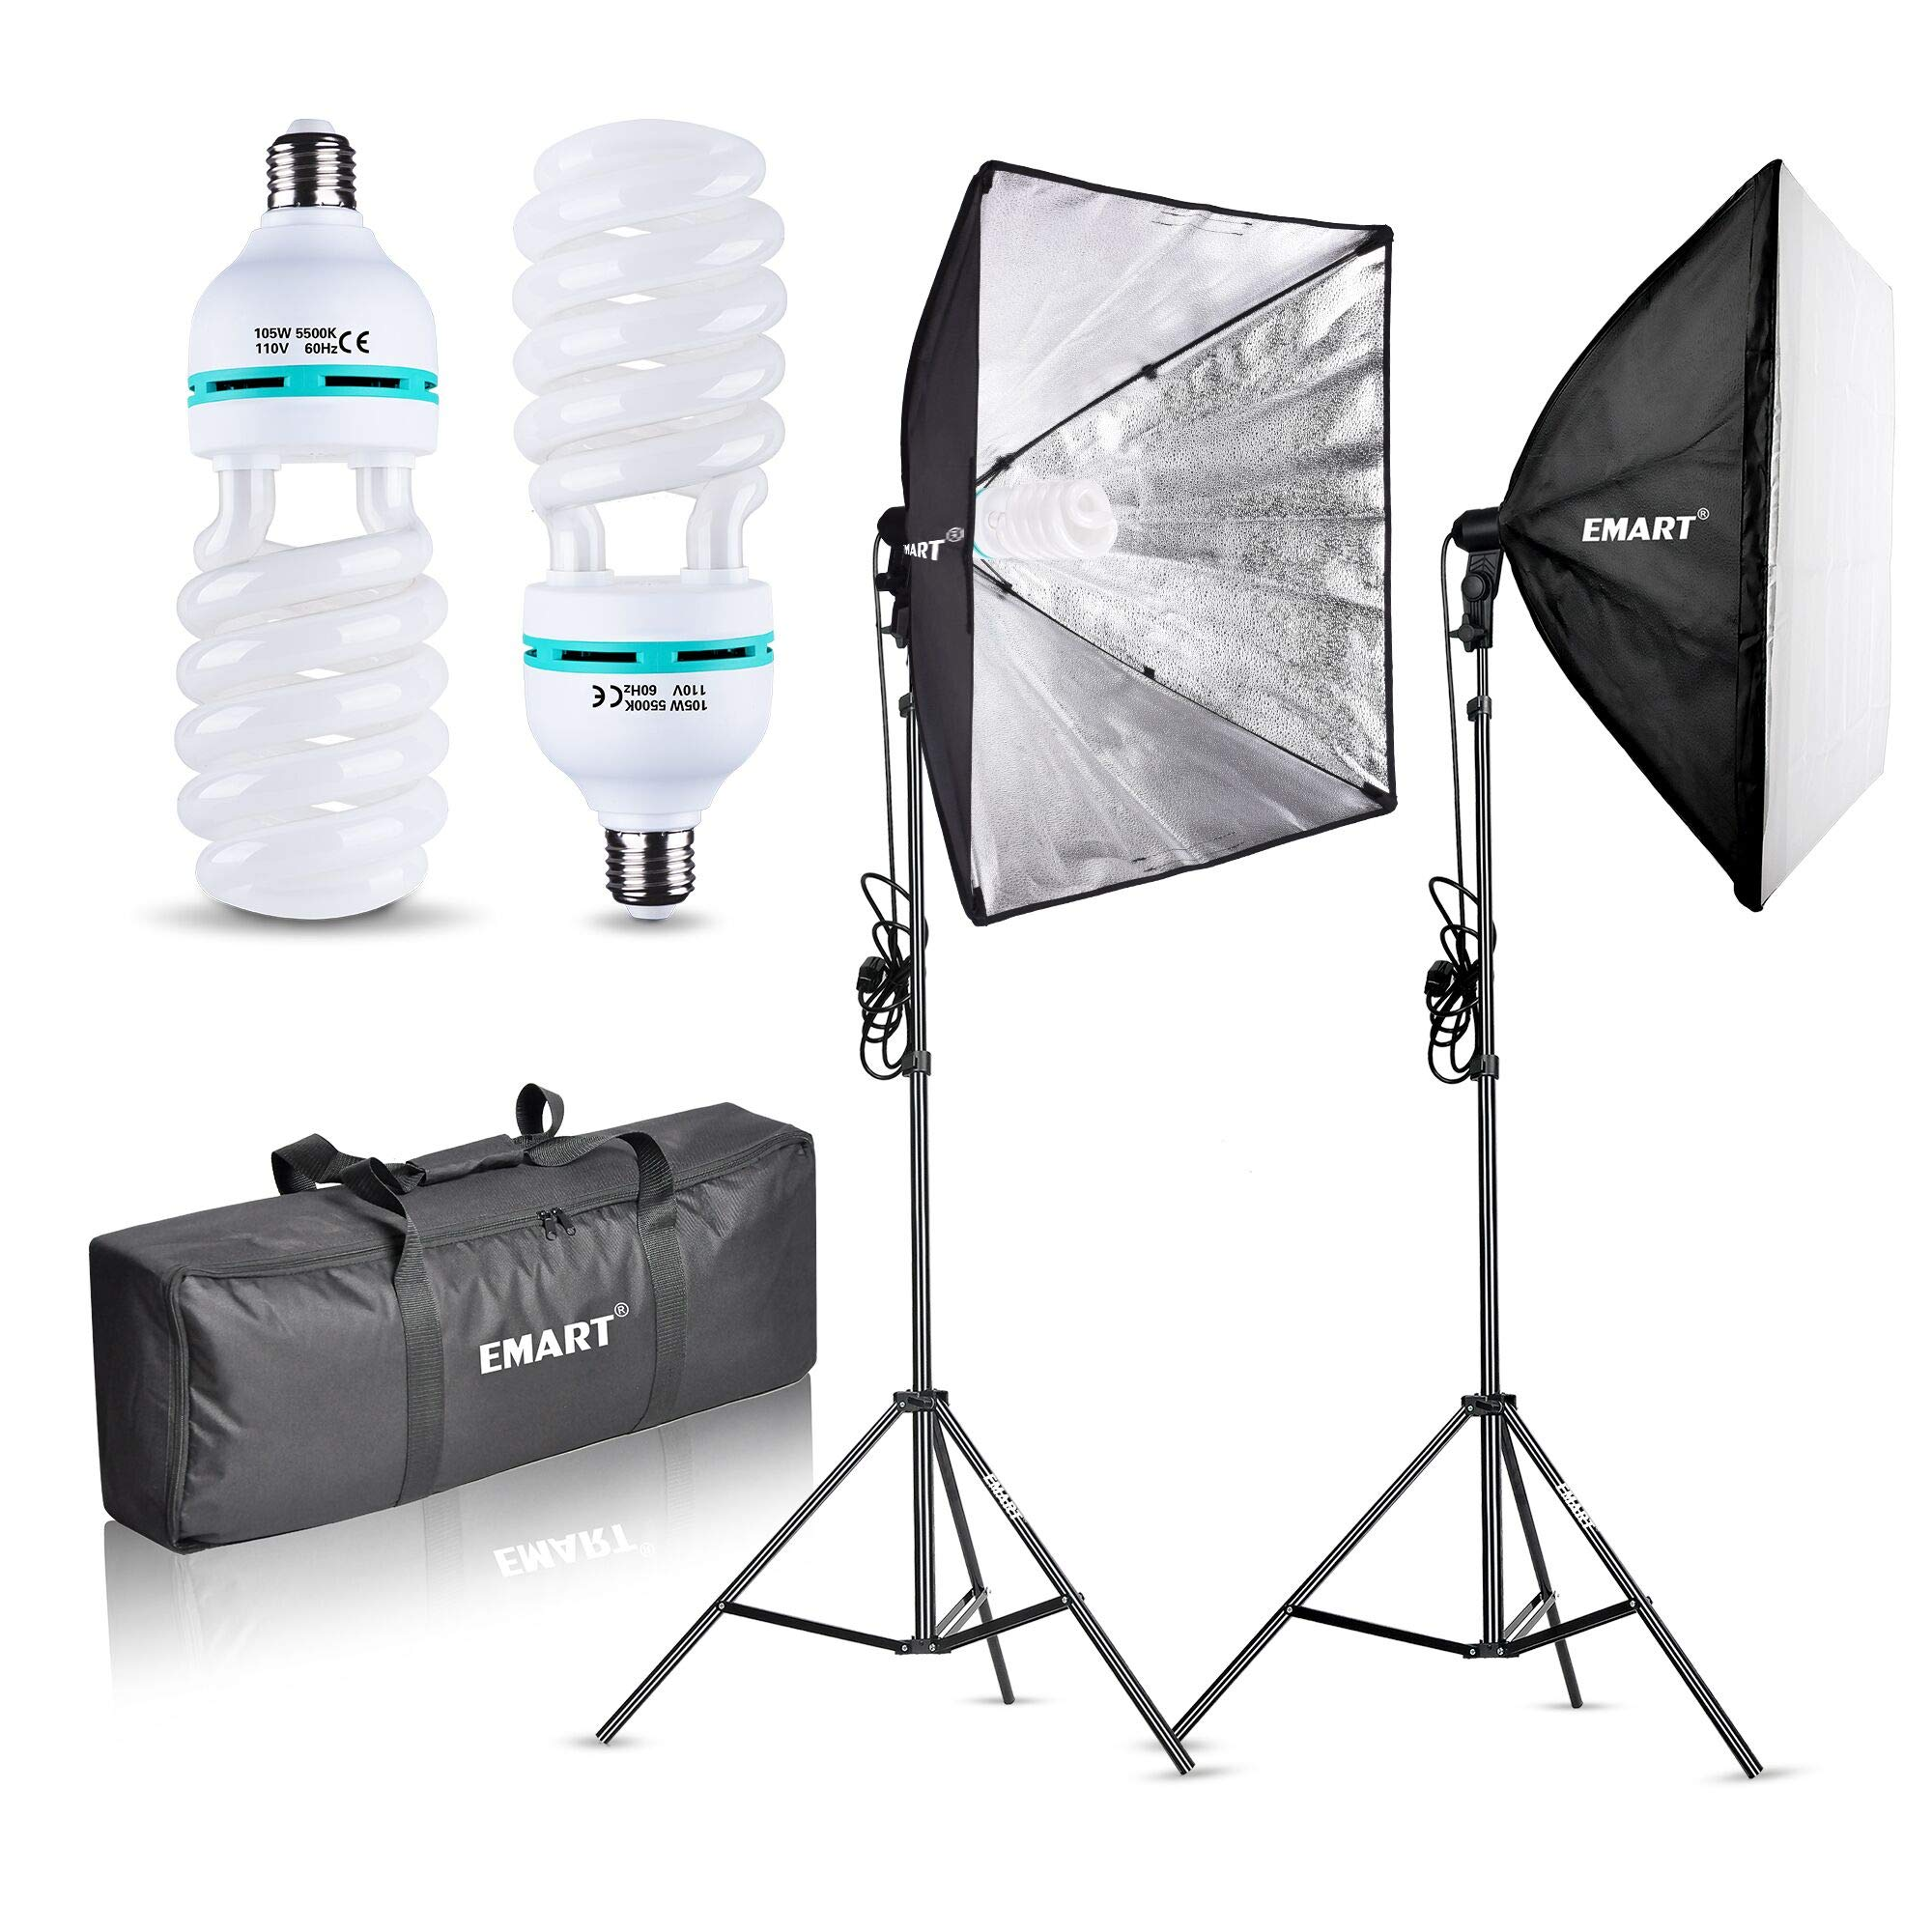 Emart 1000W Softbox Lighting Kit Photography Continuous Photo Studio Light System for YouTube Video Shooting Soft Box 24'' x 24'' by EMART